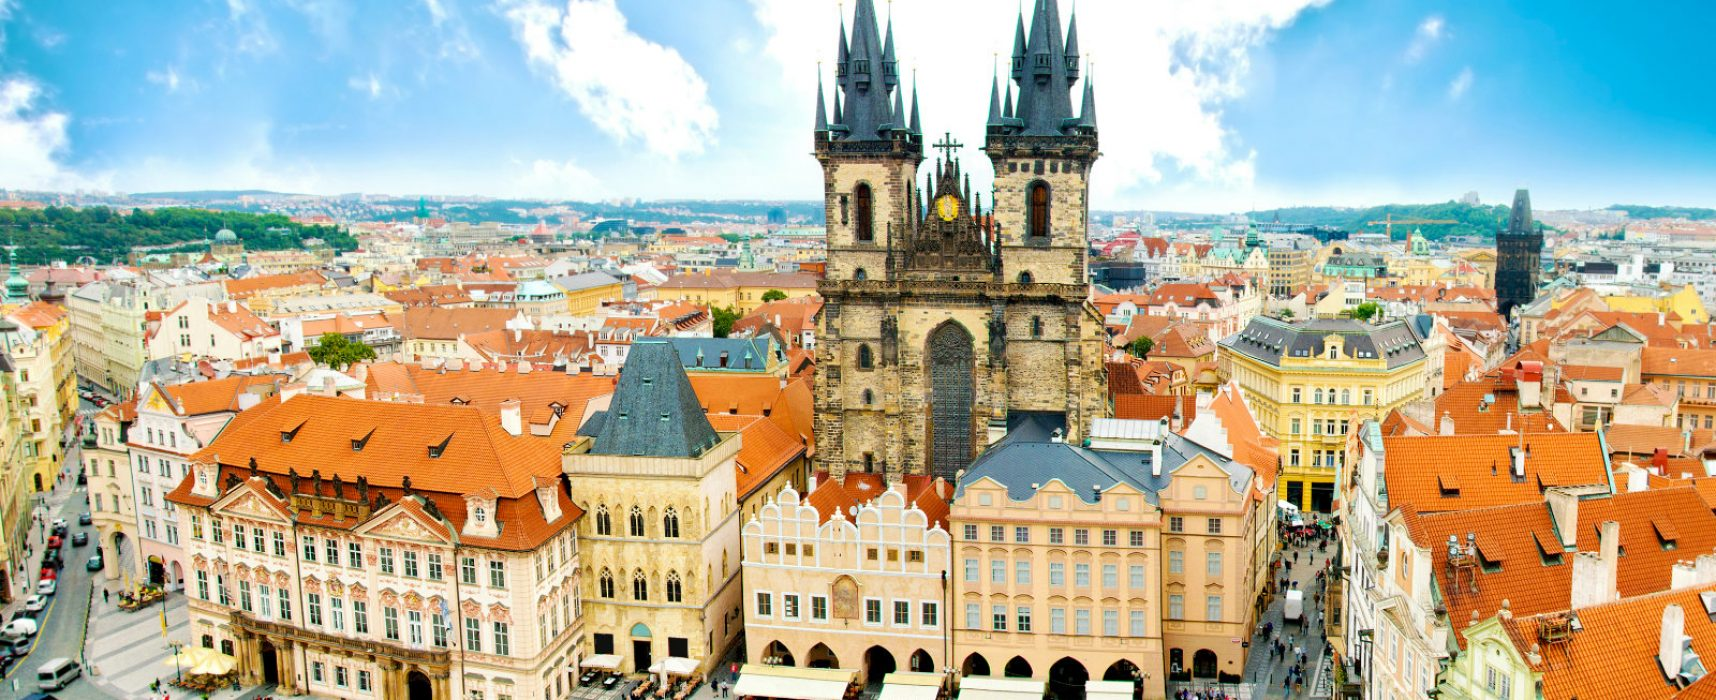 #EUelections2019: Disinformation's Role in the Czech Republic